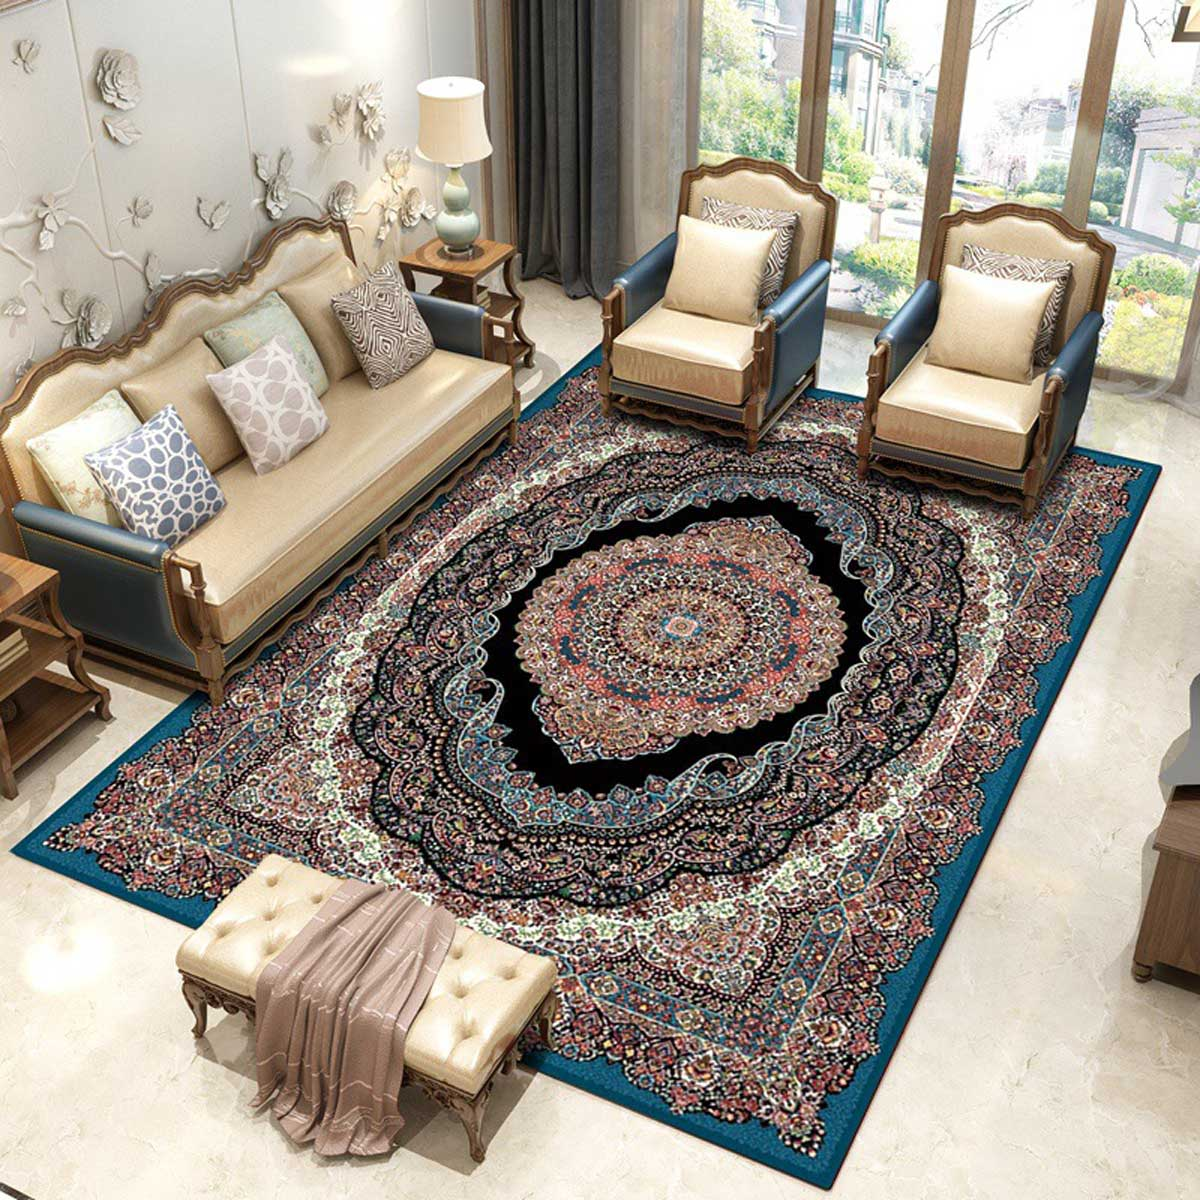 Adorn the Floor with a Persian Rug